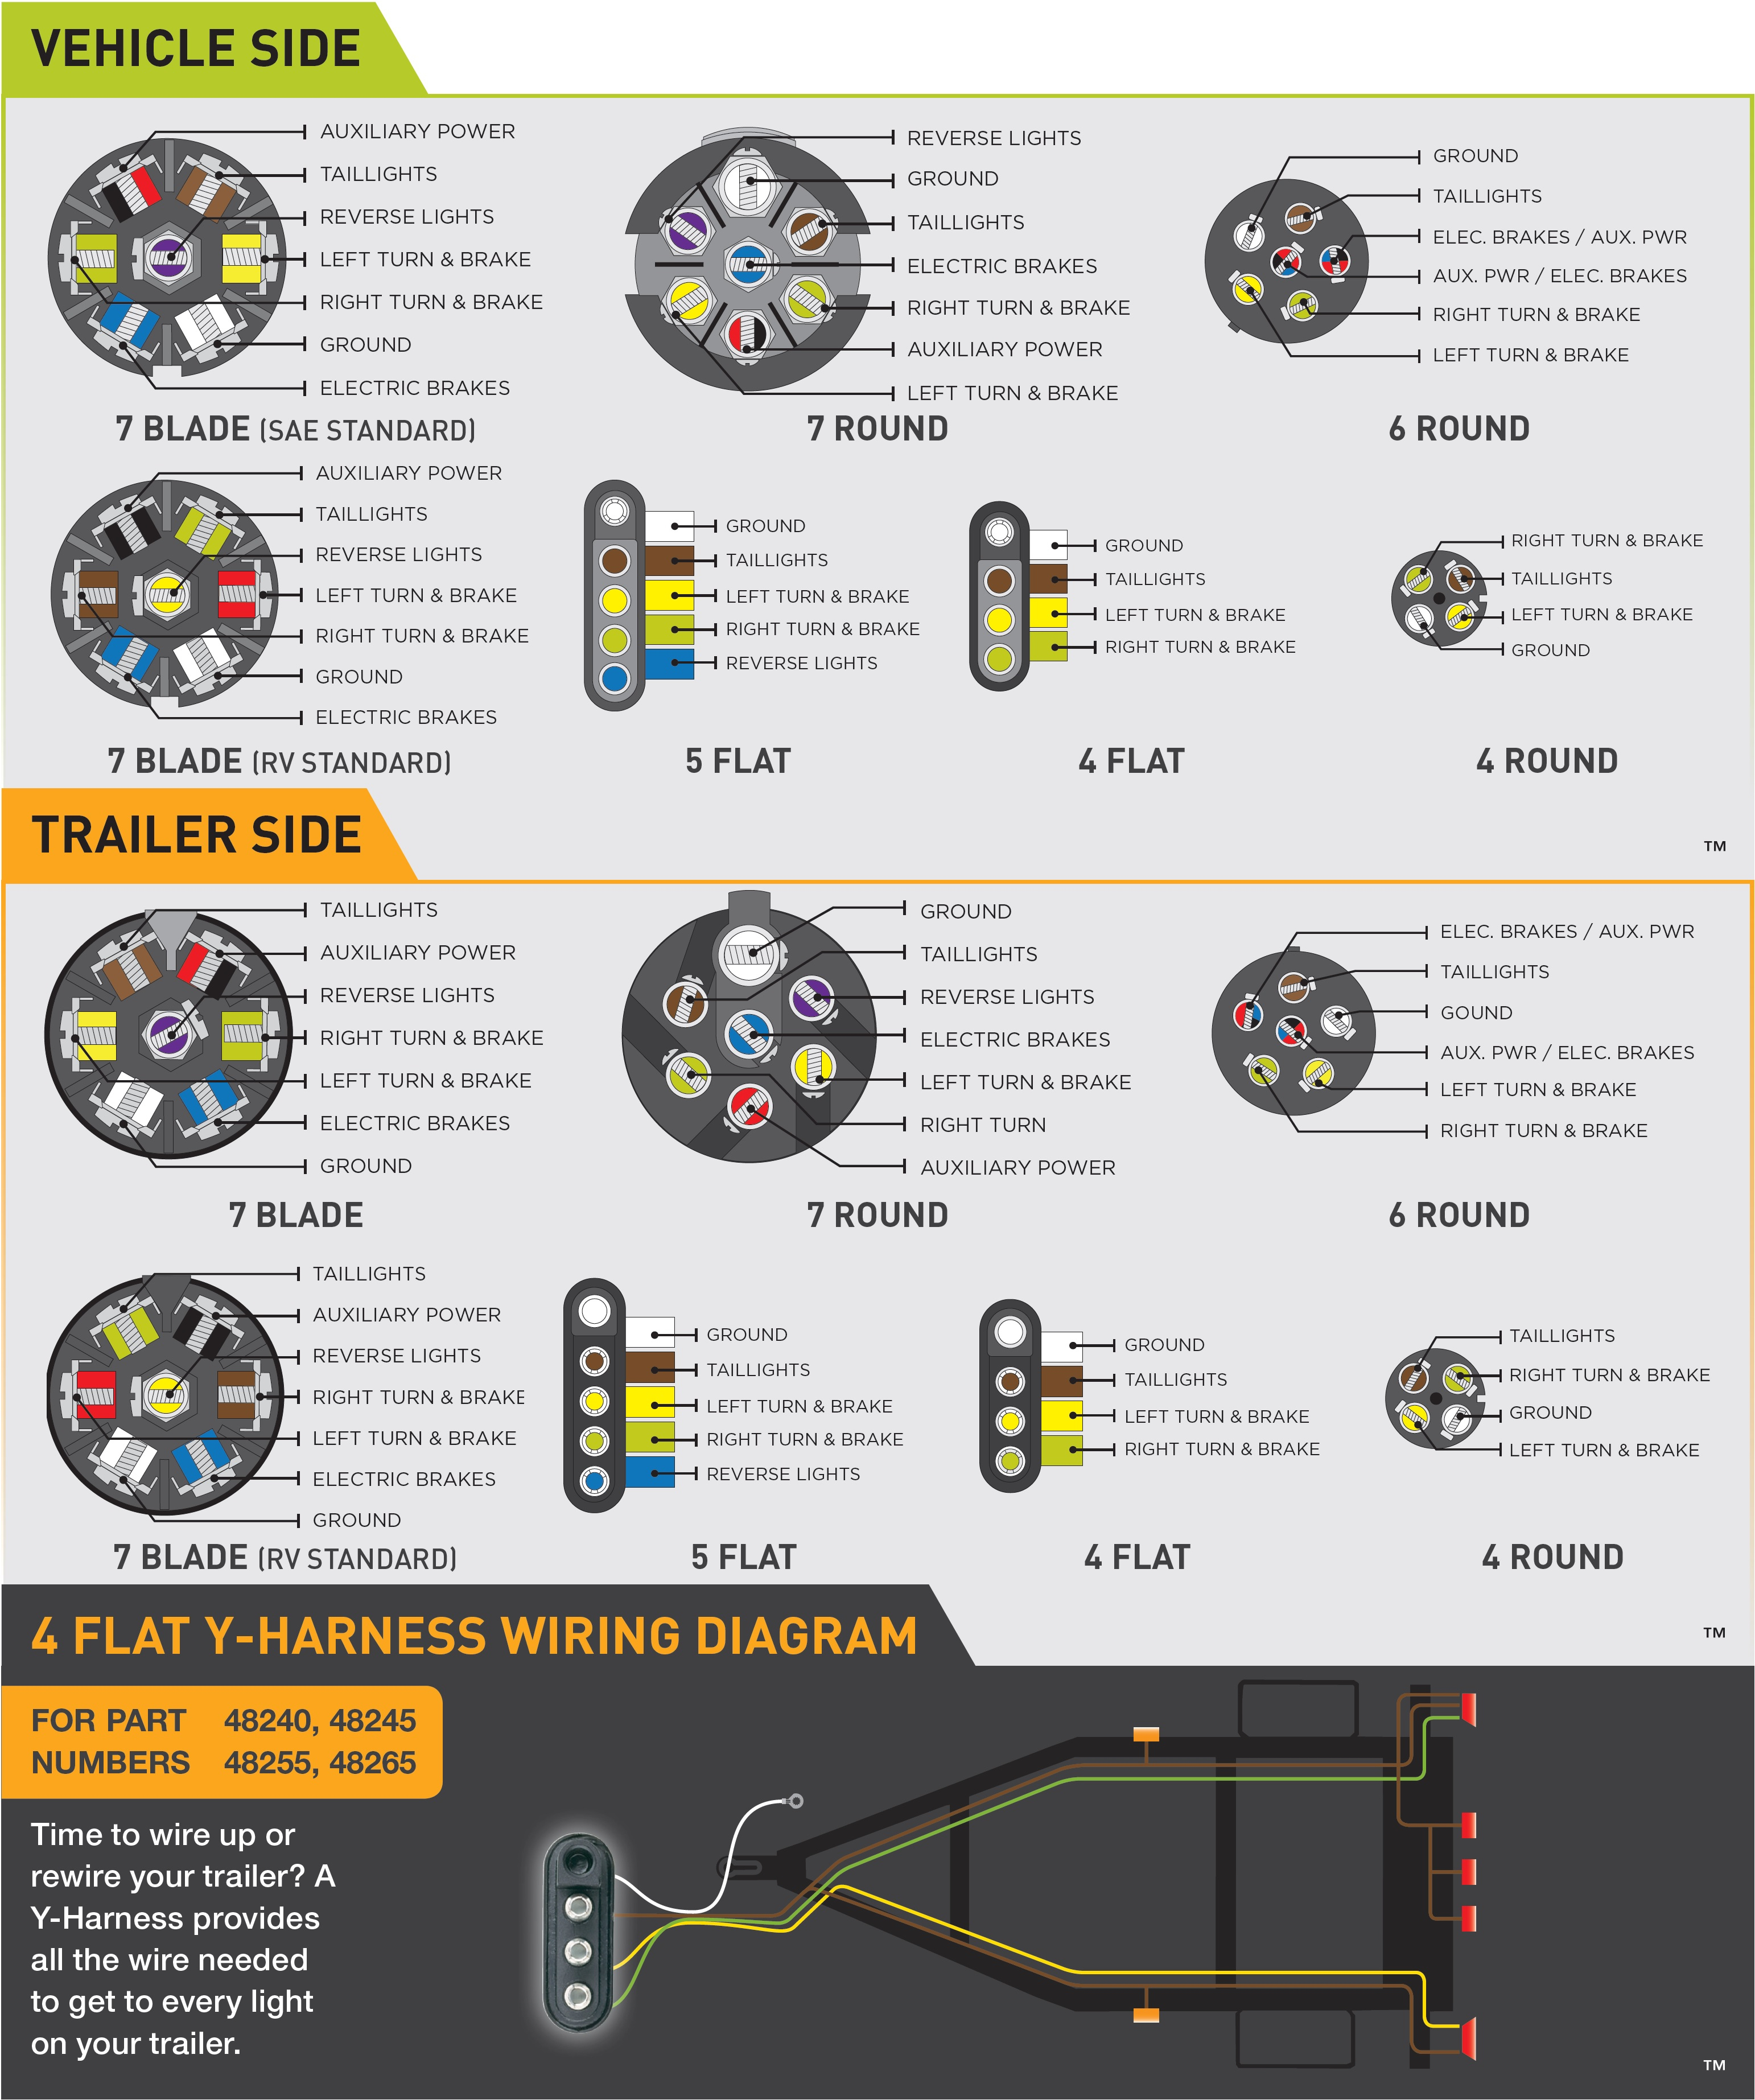 Wiring Guides - Wiring Diagram For Trailer Brakes